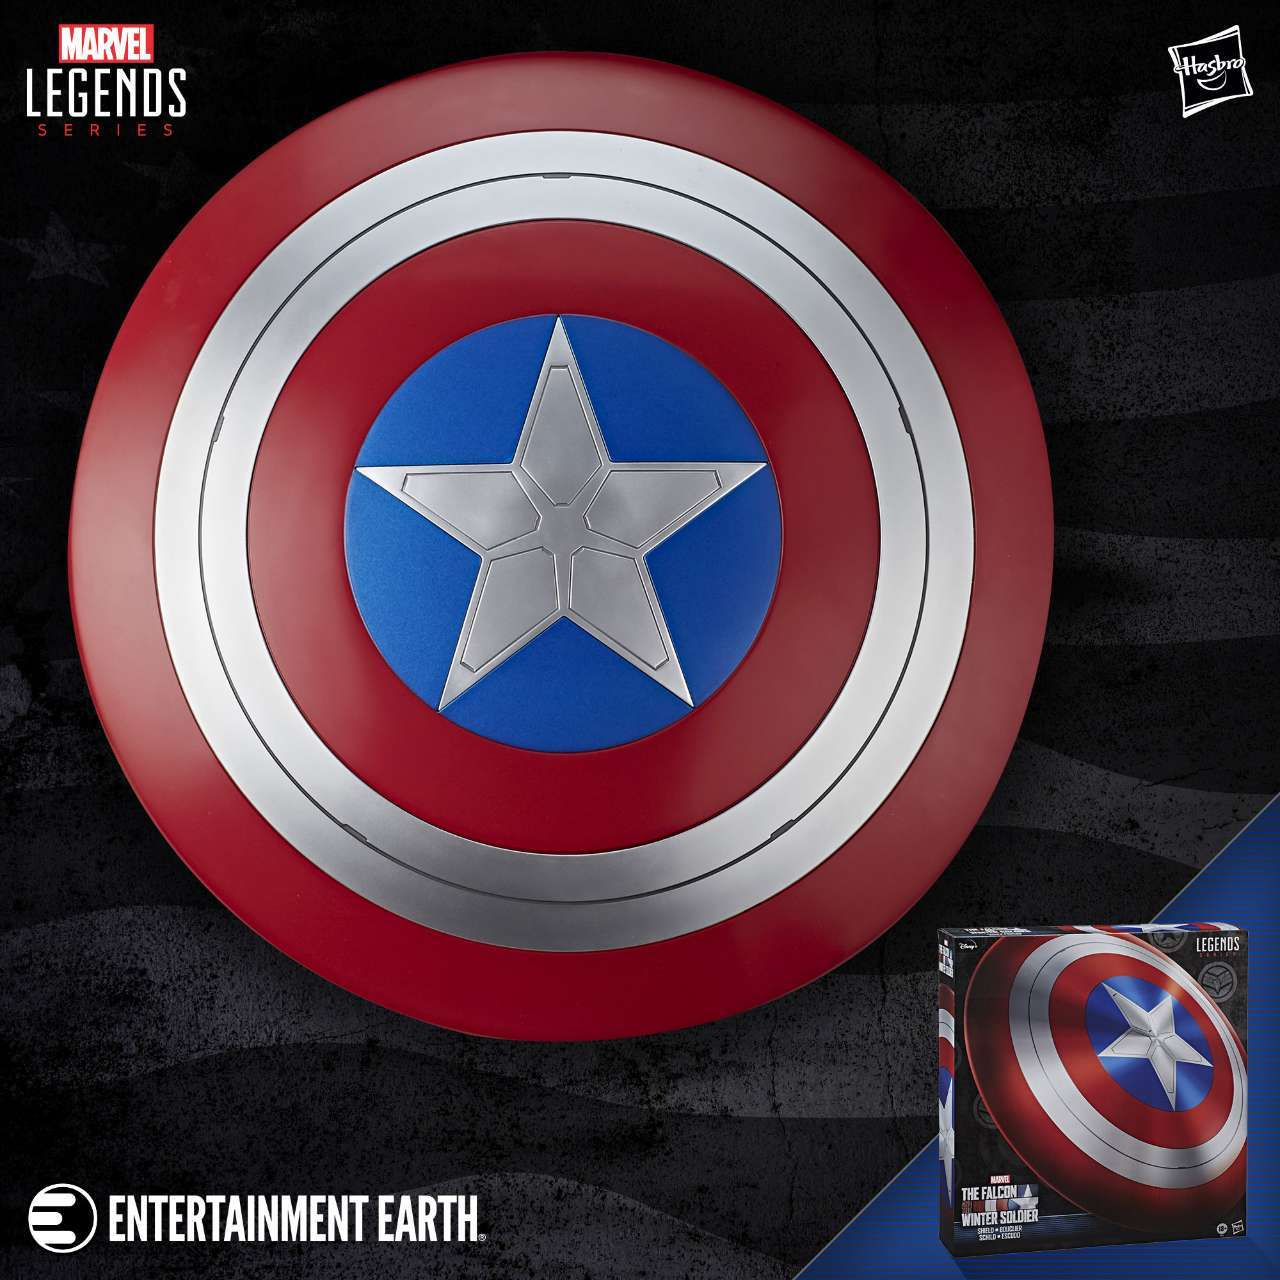 The Falcon and the Winter Soldier Marvel Legends Prop Replica Shield is Live